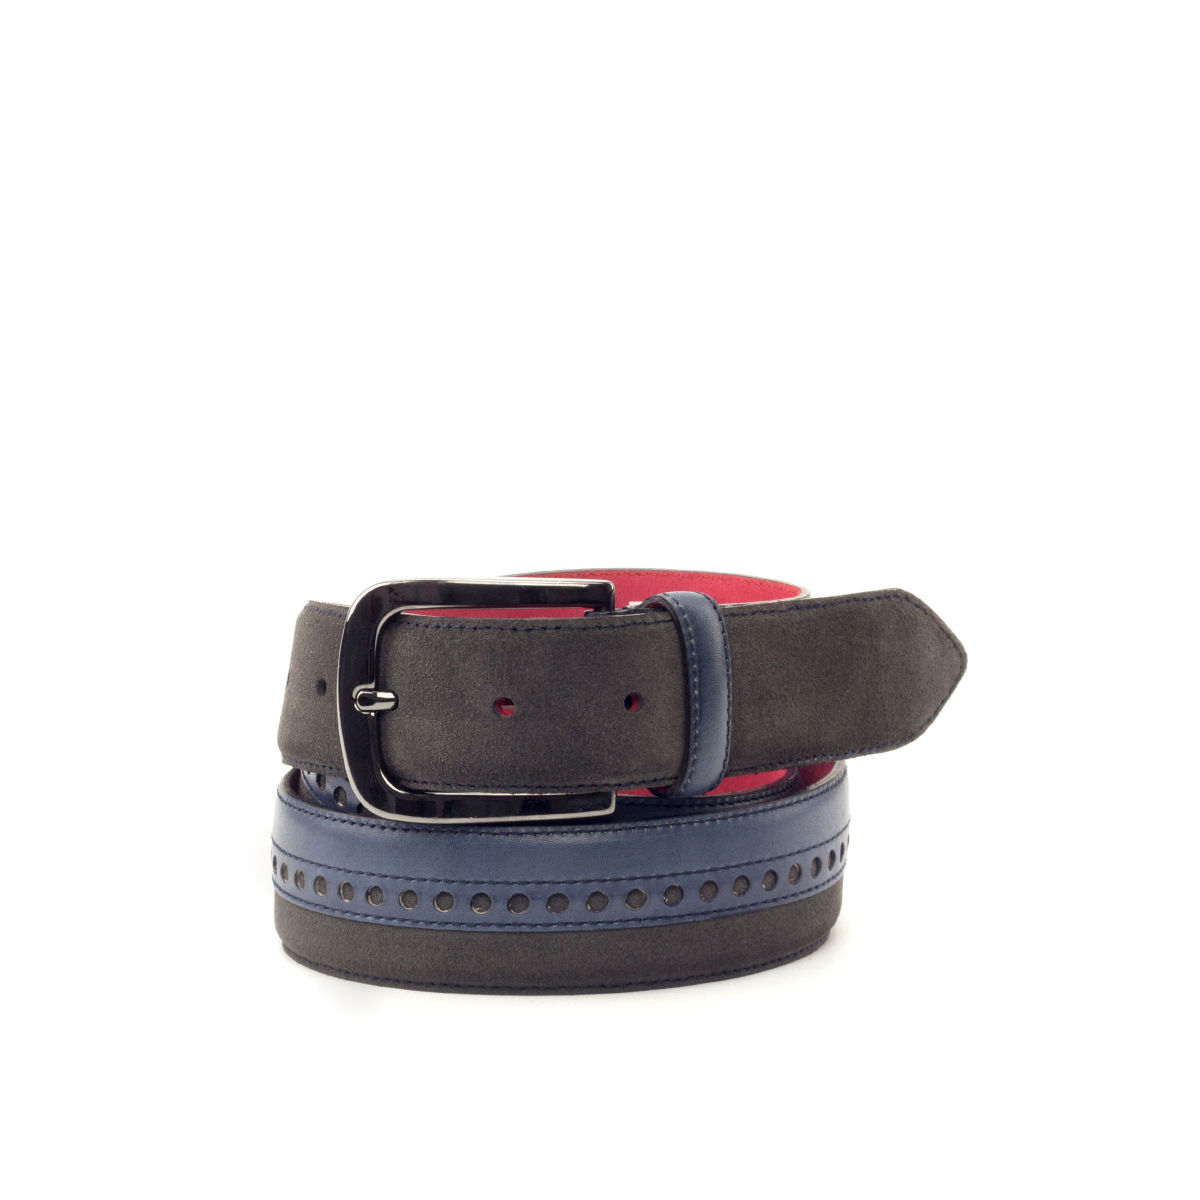 Bottom view of model La Rosita, navy blue painted calf, grey suede, red nubuck, graphite buckle Golf BespokeShoes